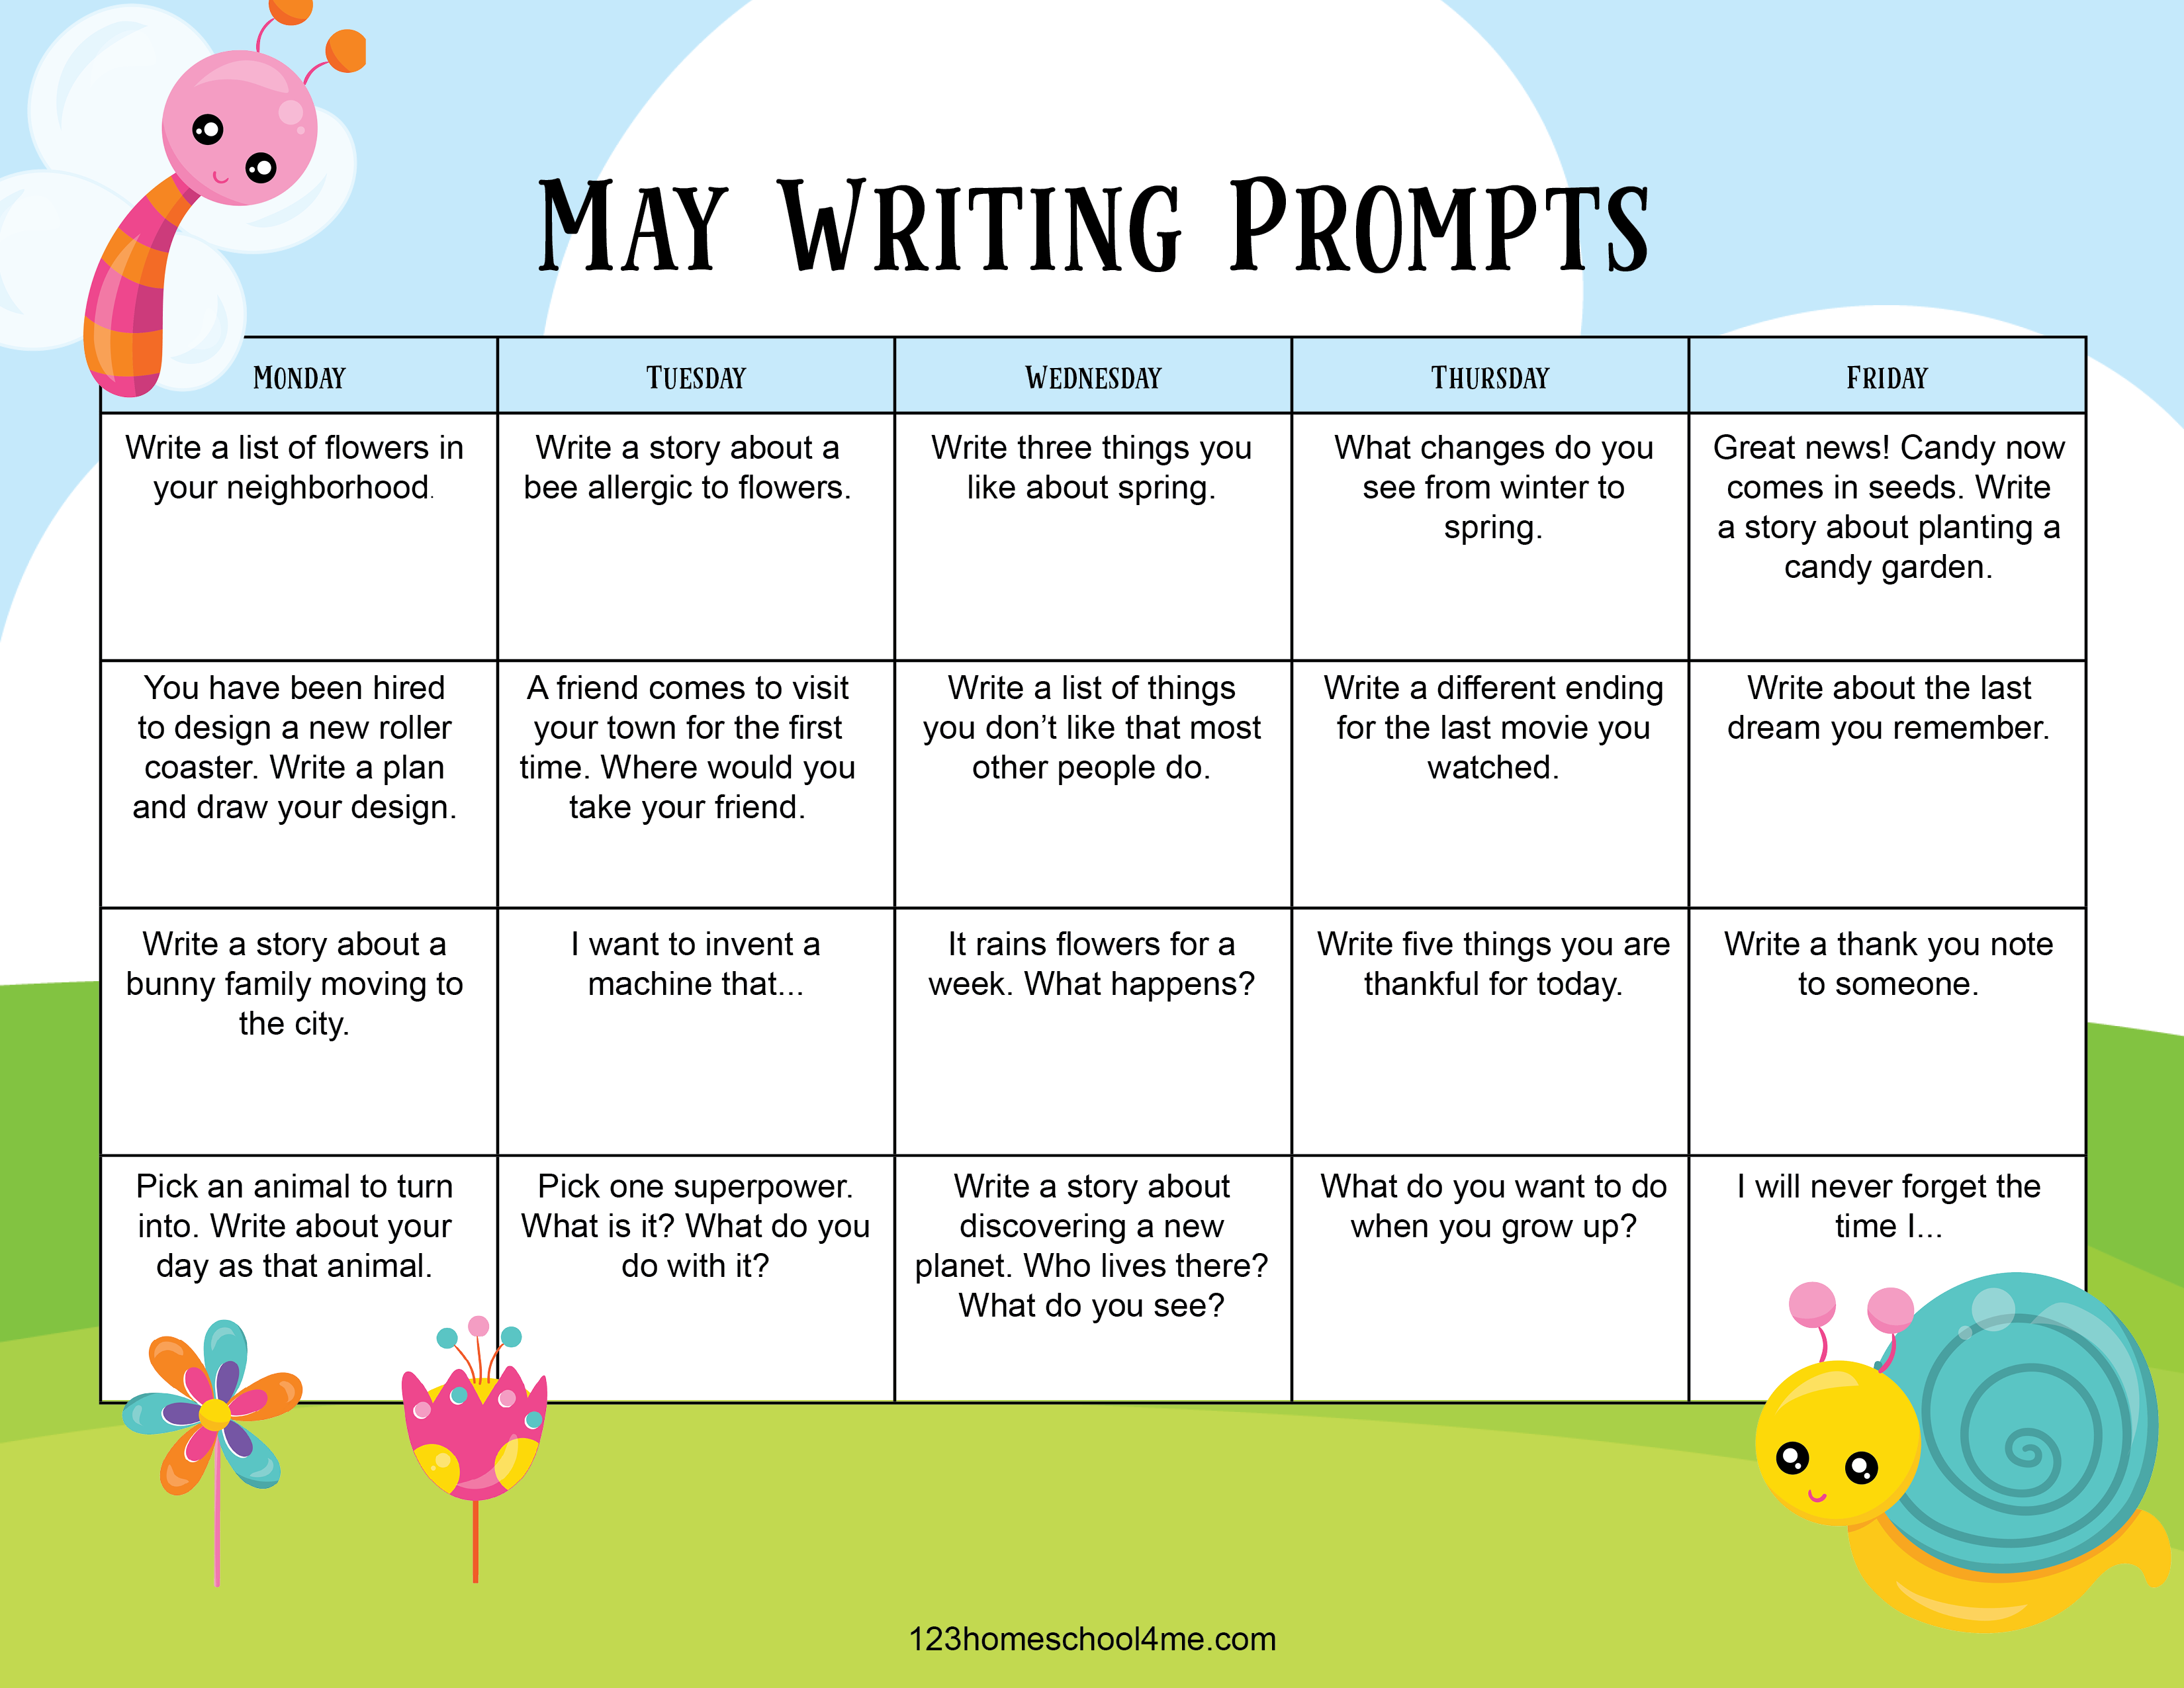 lots of fun, easy may writing ideas for kindergarten, first grade, 2nd grade, 3rd grade, 4th grade, 5th grade, and 6th grade students